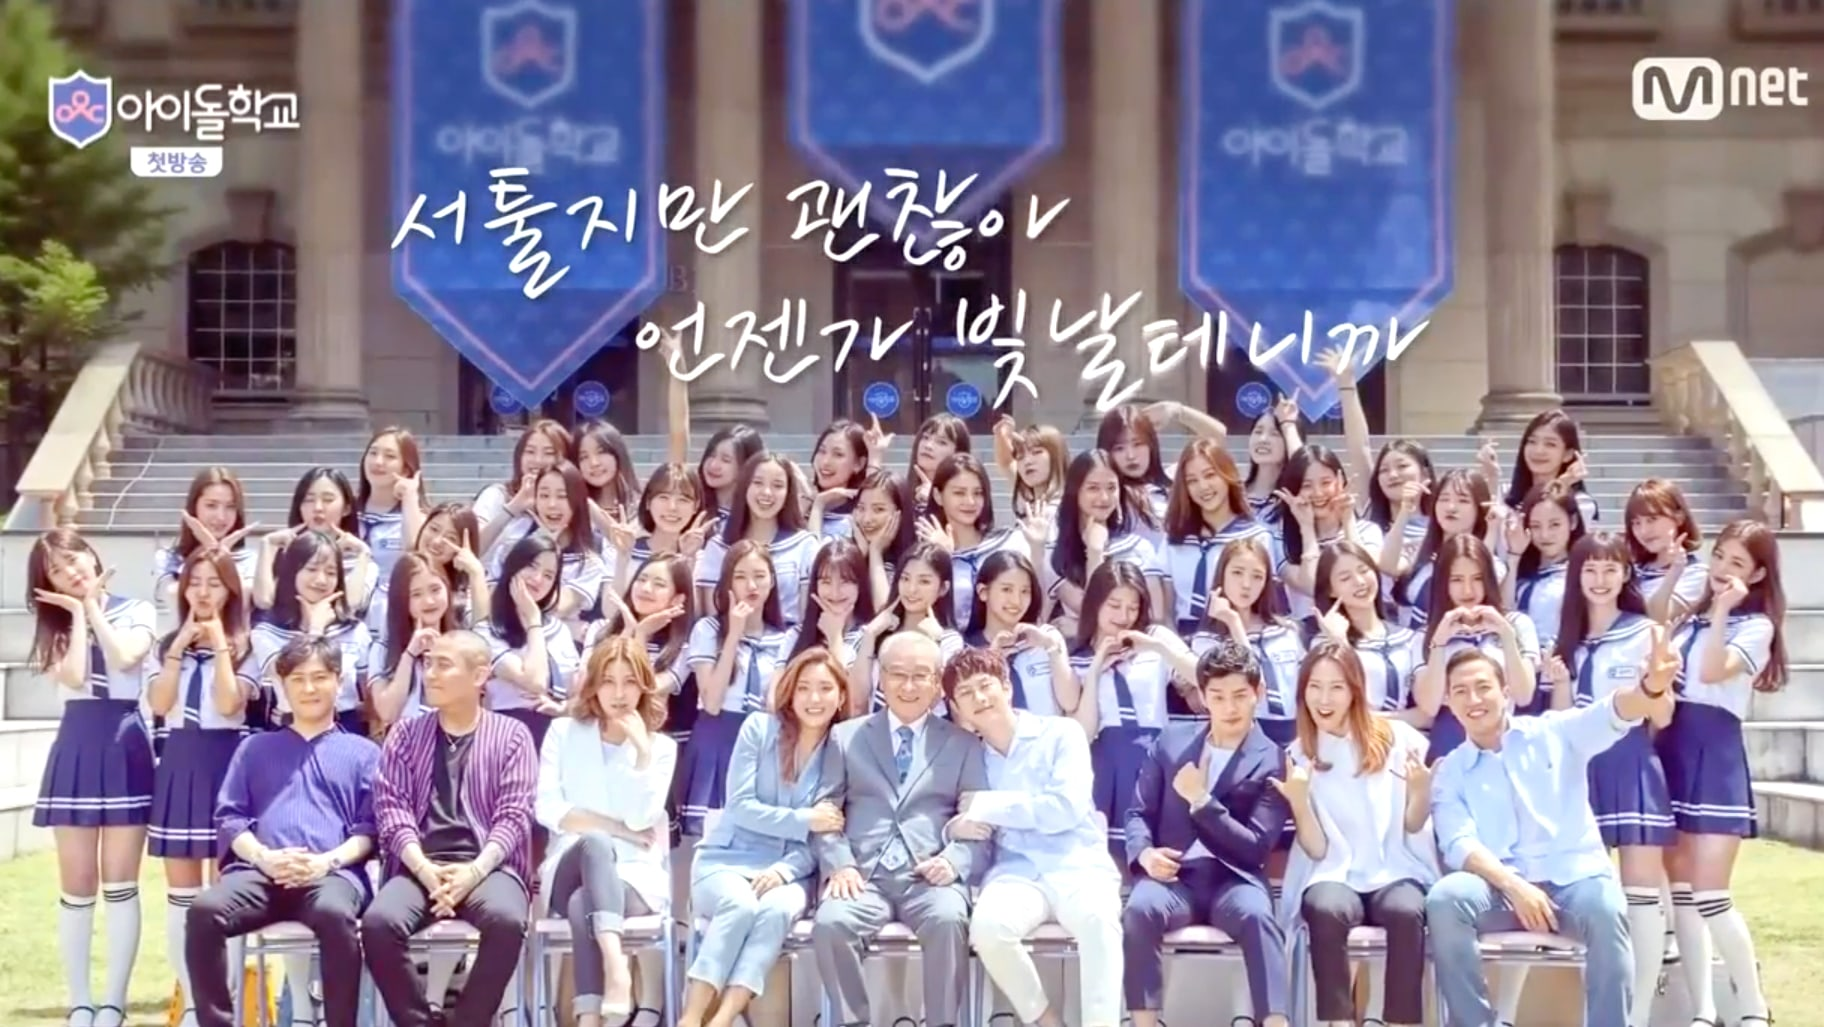 Mnets Idol School Surpasses Expectations And PD Talks About Absence Of Devils Editing In Program